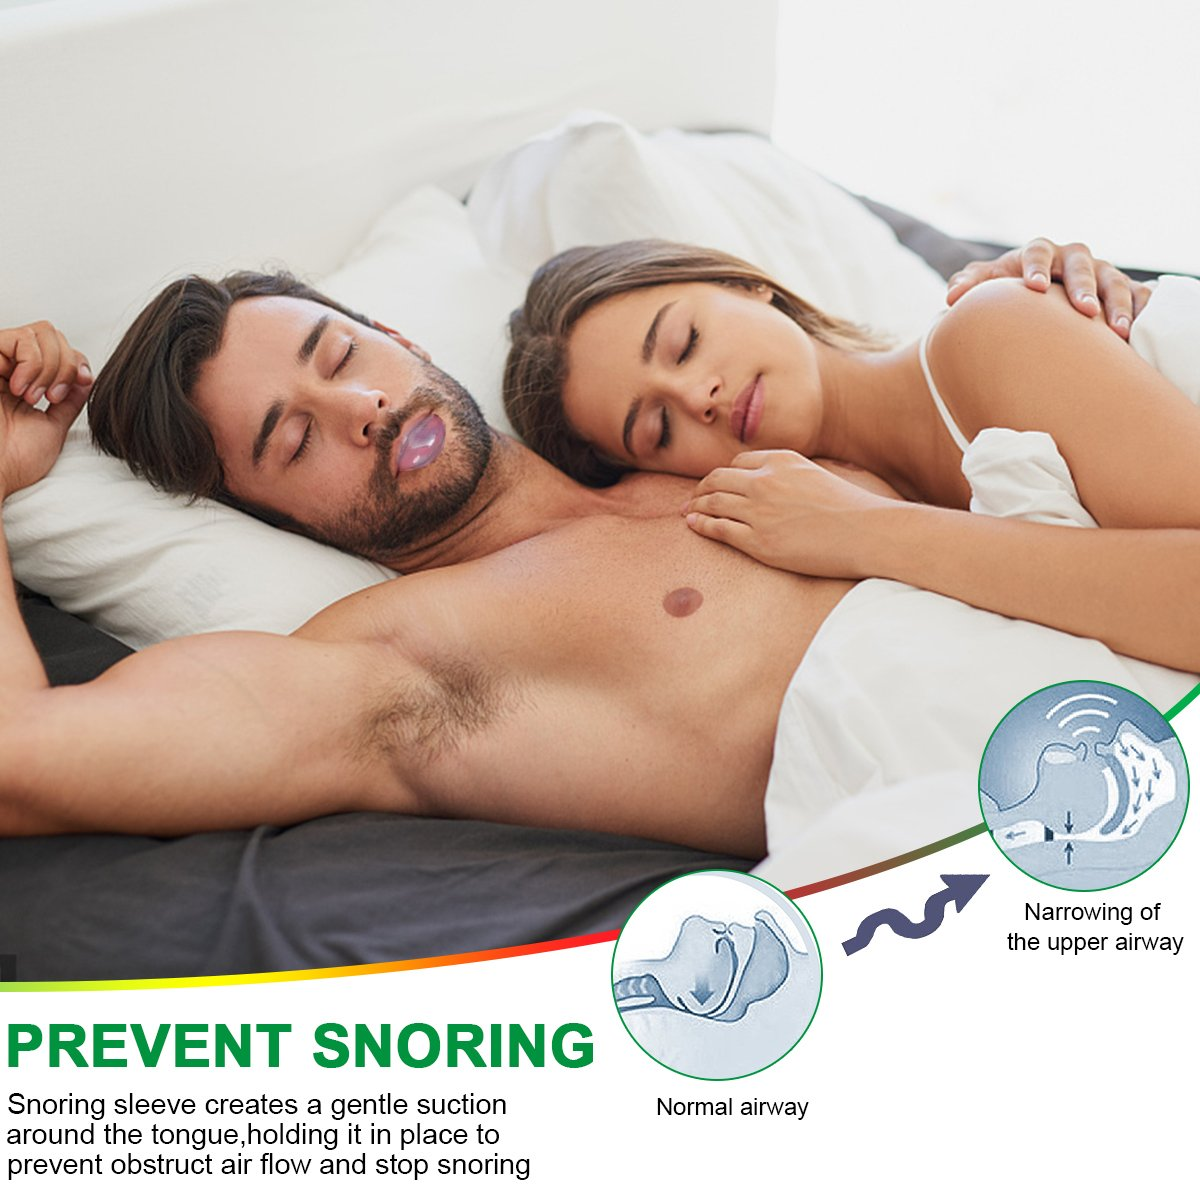 Anti Snoring Devices Tongue, 4 Set Snore Stopper Nose Vents Nasal Dilators Stop Snoring Solution Snoring Mouthpiece Sleep Aid Device Snore Reduction Silicone Snoring Tongue Retainer for Men Women by Donier (Image #2)